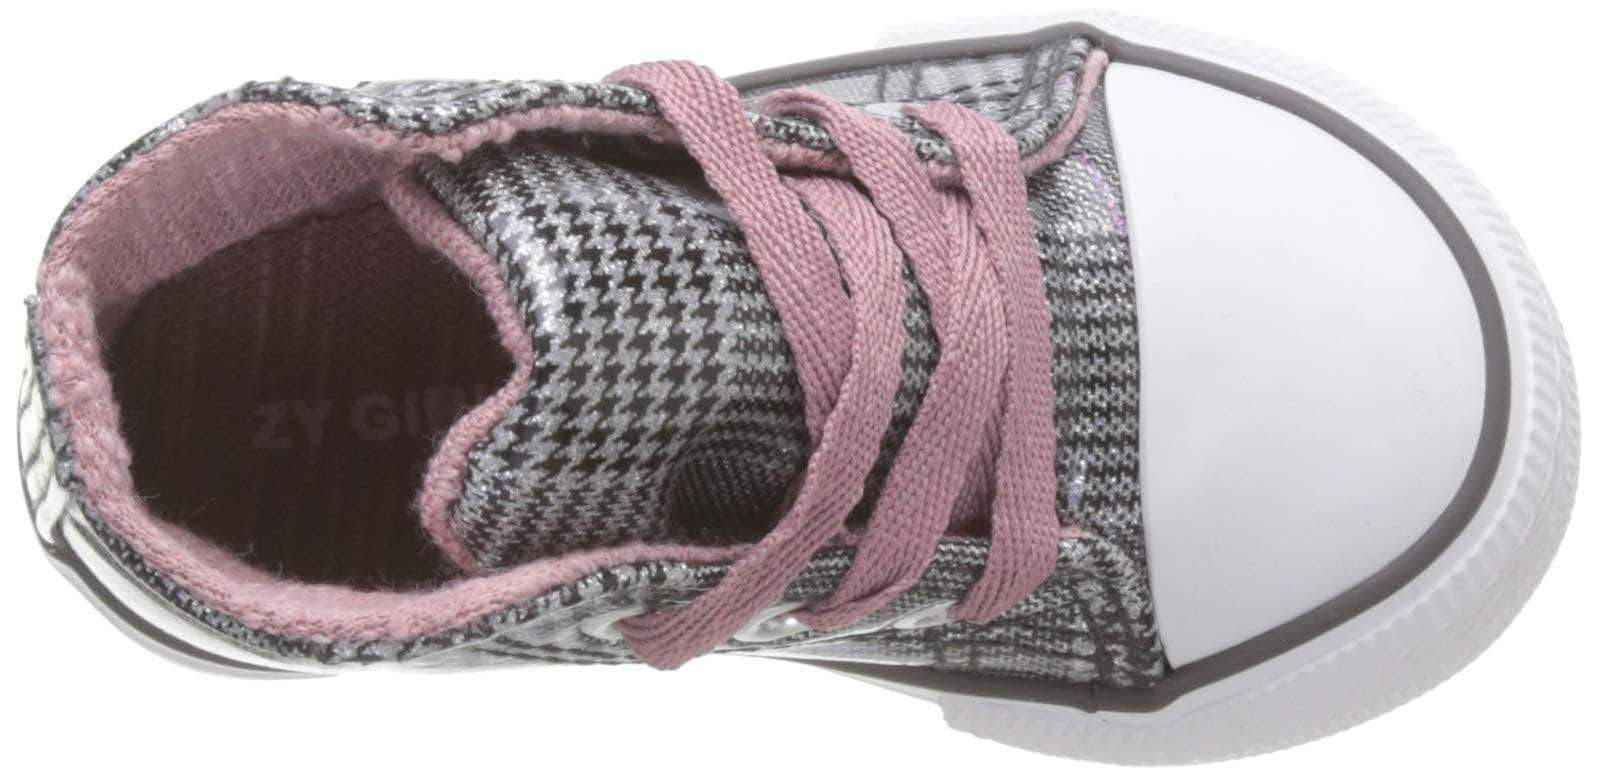 Amazon Zippy Estampadas, Zapatillas de Estar por casa para Bebés, Gris (Grey 860), 23 EU